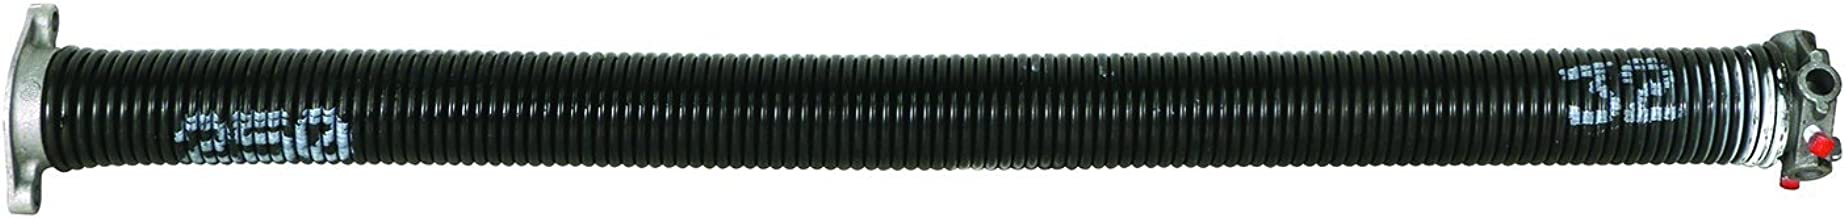 Prime-Line Products GD 12231 Garage Door Torsion Spring, .250 in. x 1-3/4 in. x 32 in., White, Left Hand Wind